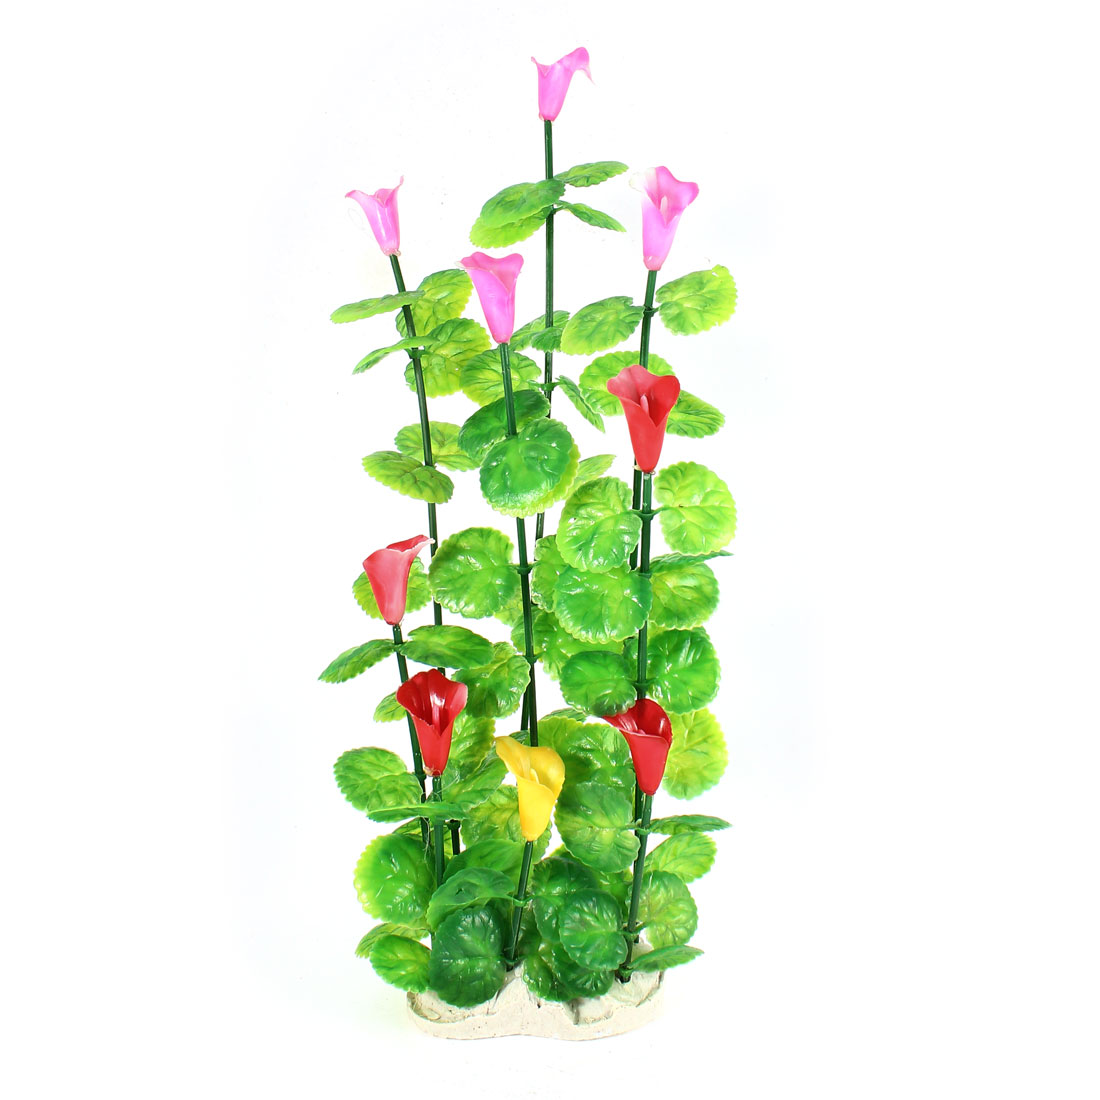 36cm High Emulational Pink Flower Green Leaves Water Plant Grass for Fish Tank Aquarium Tank Decor